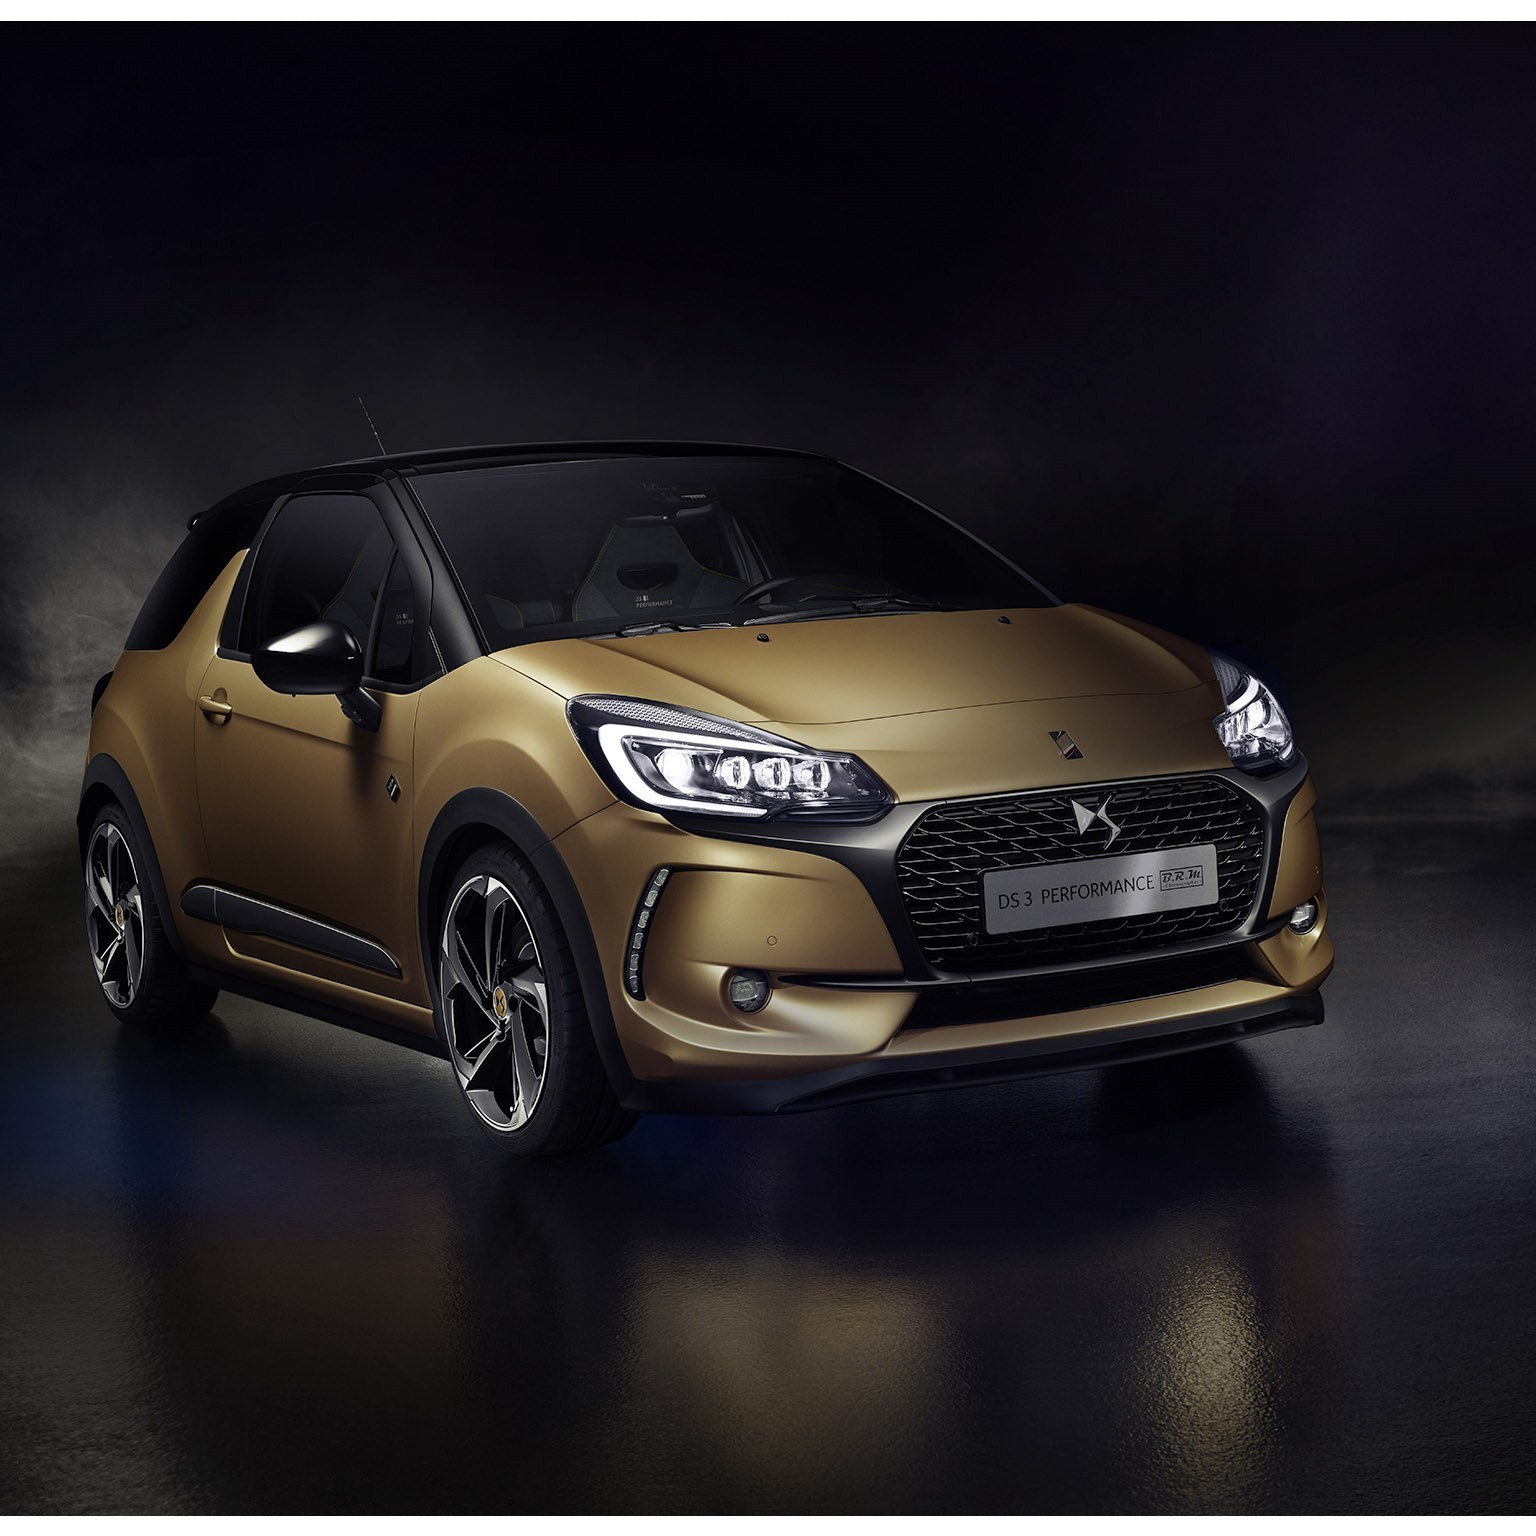 2016 DS 3 Performance BRM Chronographes